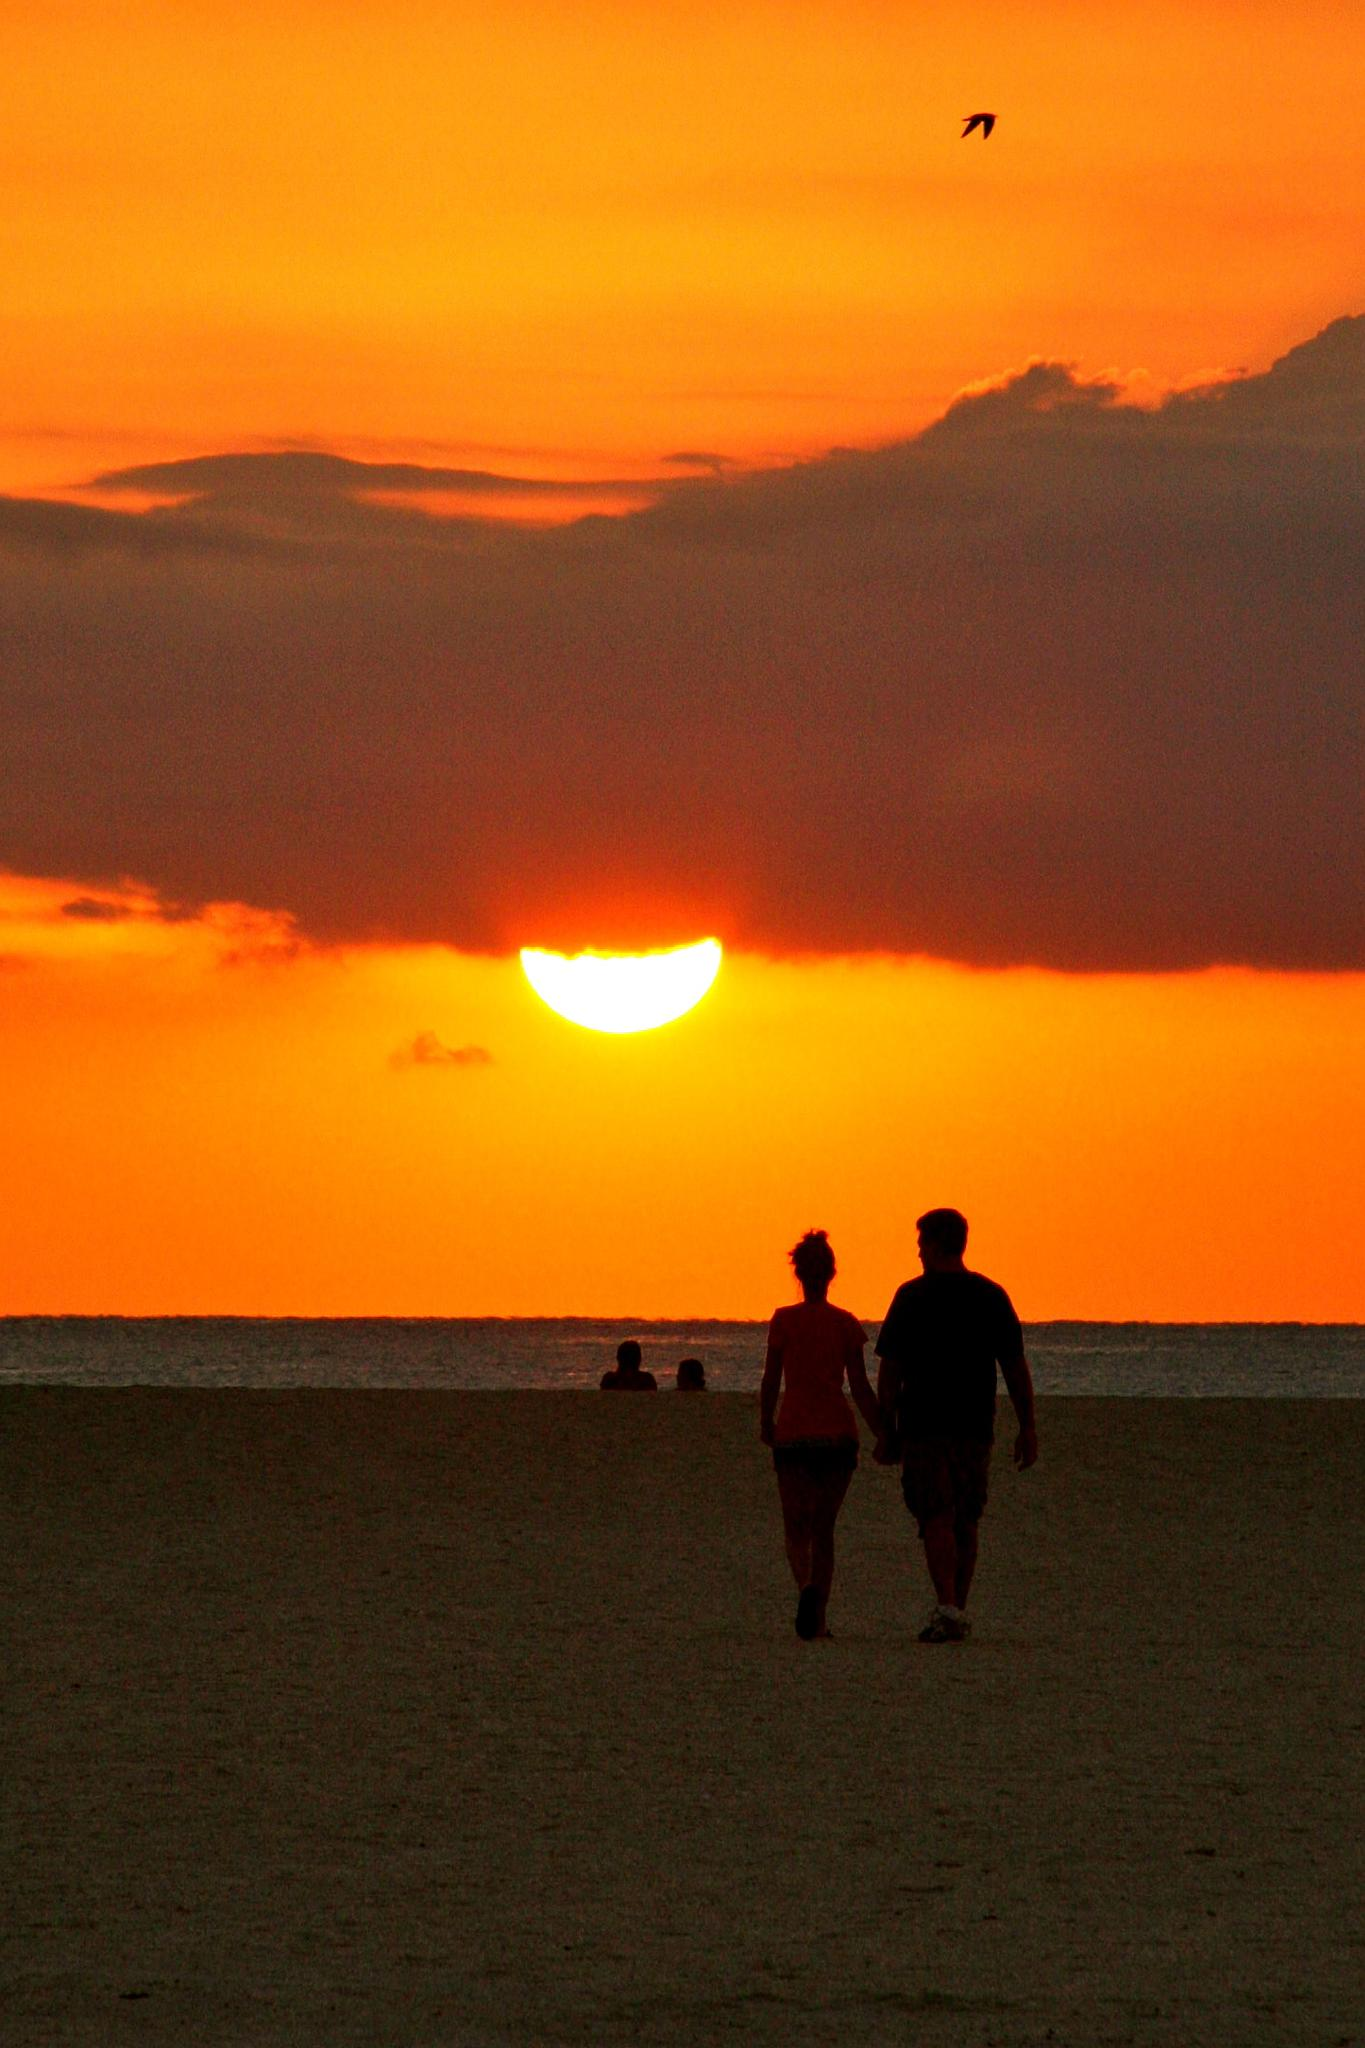 Romantic Couple on a Beach at Sunset by Jason R. Rich